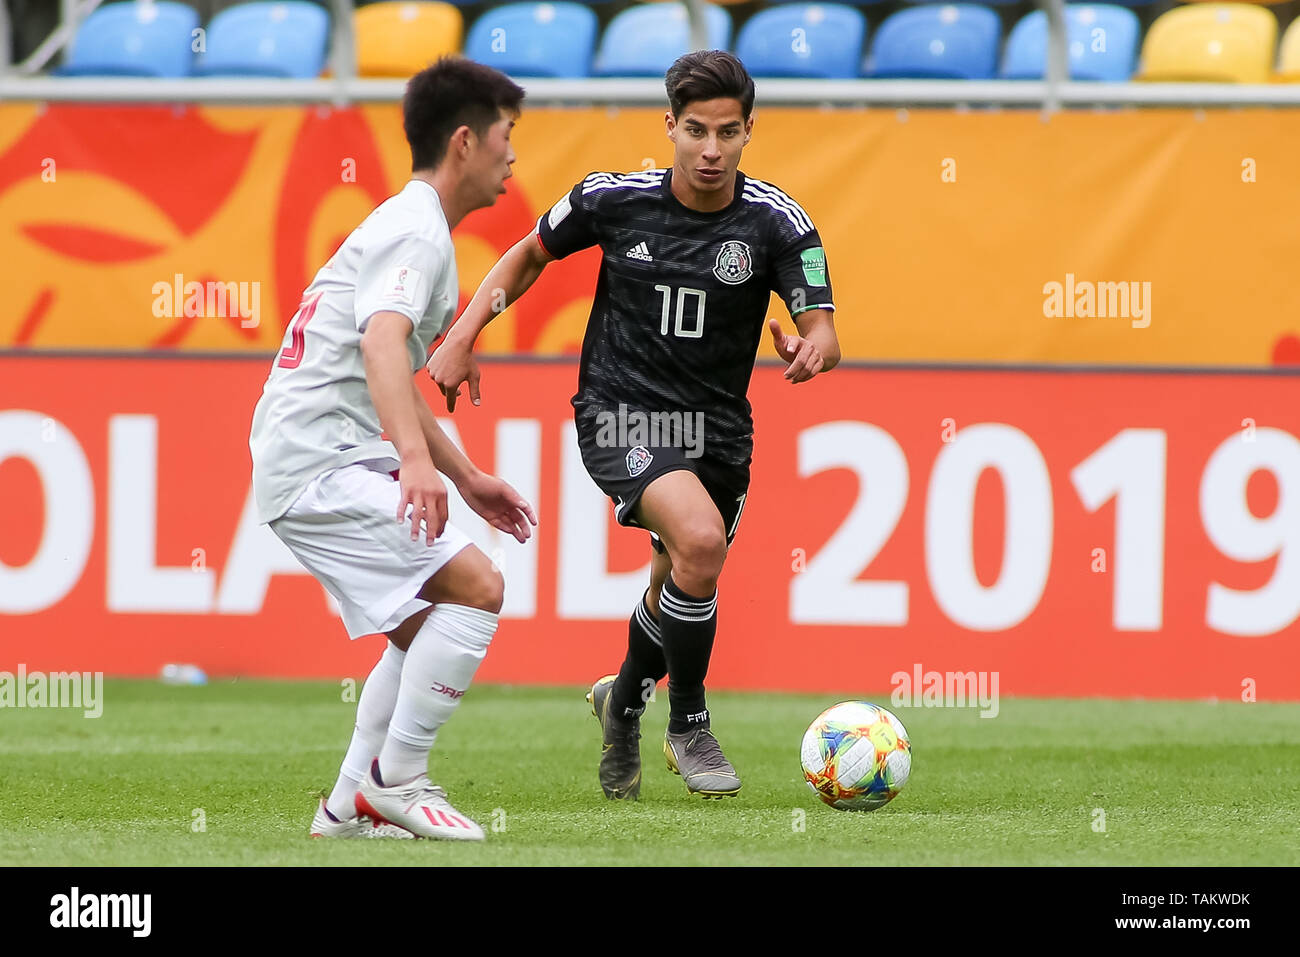 Gdynia Stadium, Gdynia, Poland - 26th May, 2019: Toichi Suzuki (L) from Japan and Diego Lainez (R) from Mexico are seen in action during FIFA U-20 World Cup match between Mexico and Japan (GROUP B) in Gdynia. (Final score; Mexico 0:3 Japan) - Stock Image